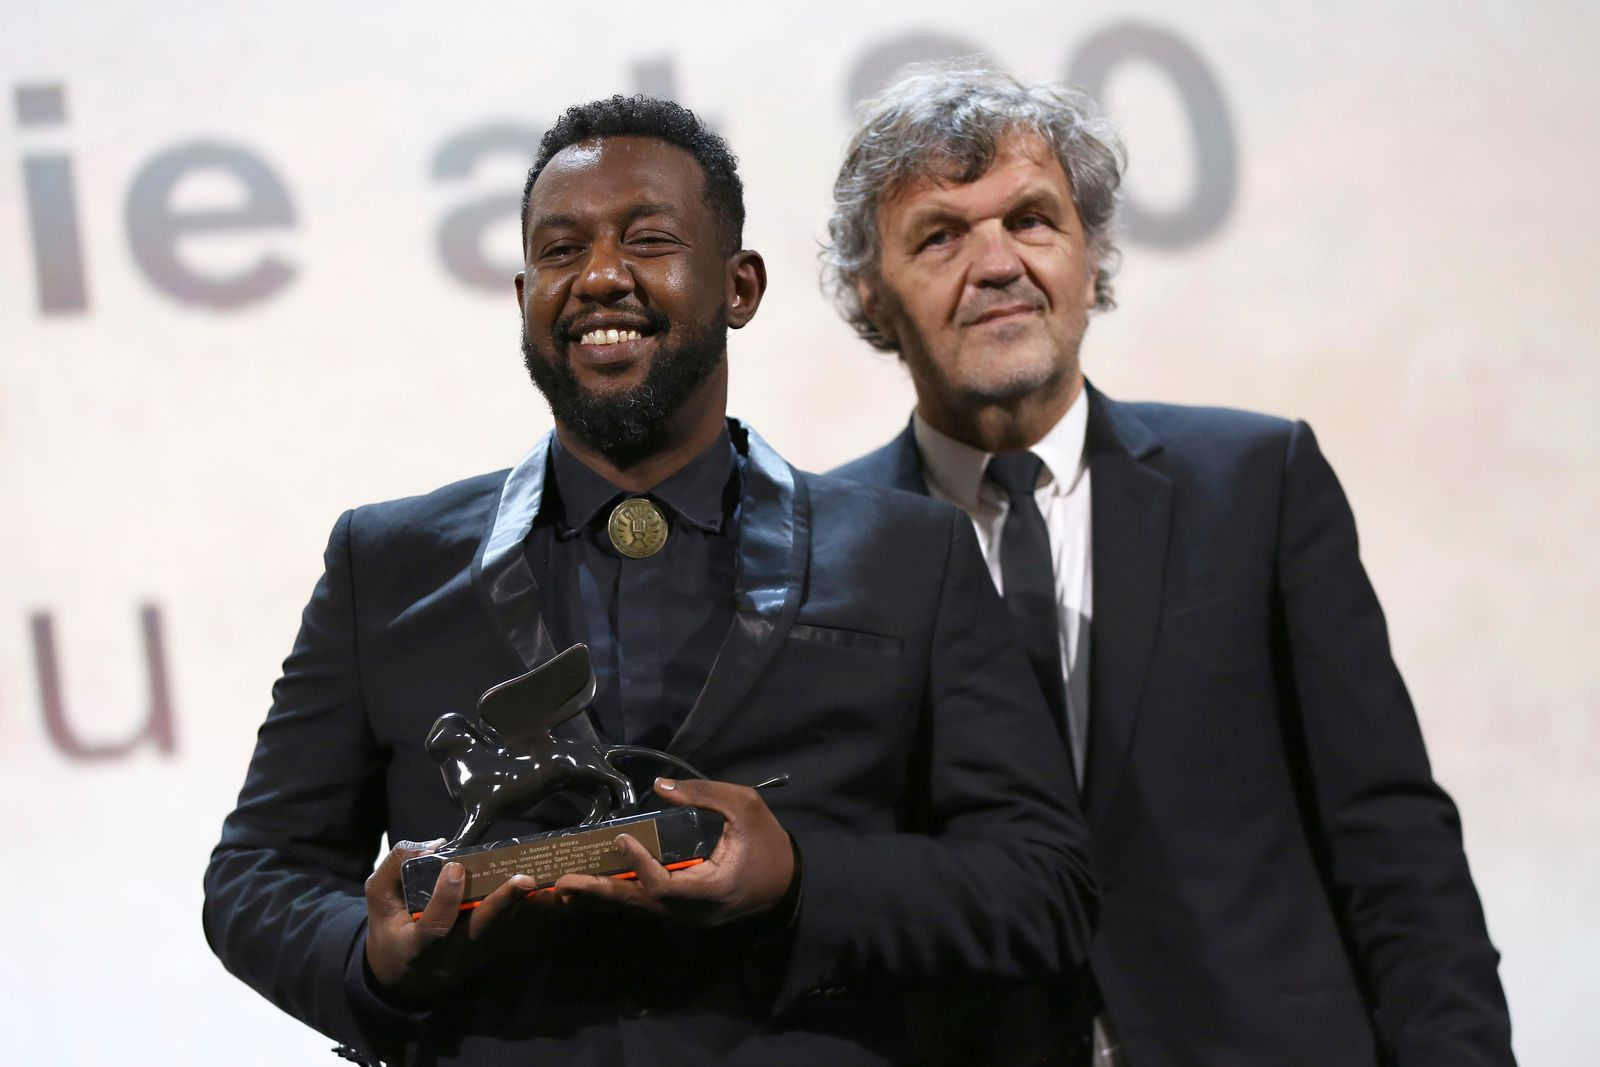 Director Amjad Abu Alala, left, holds the Luigi De Laurentiis Venice Award for a Debut Film for the film 'You Will Die At 20', presented by jury member Emir Kustirica at the closing ceremony of the 76th edition of the Venice Film Festival, Venice, Italy, Saturday, Sept. 7, 2019. (Photo by Joel C Ryan/Invision/AP)